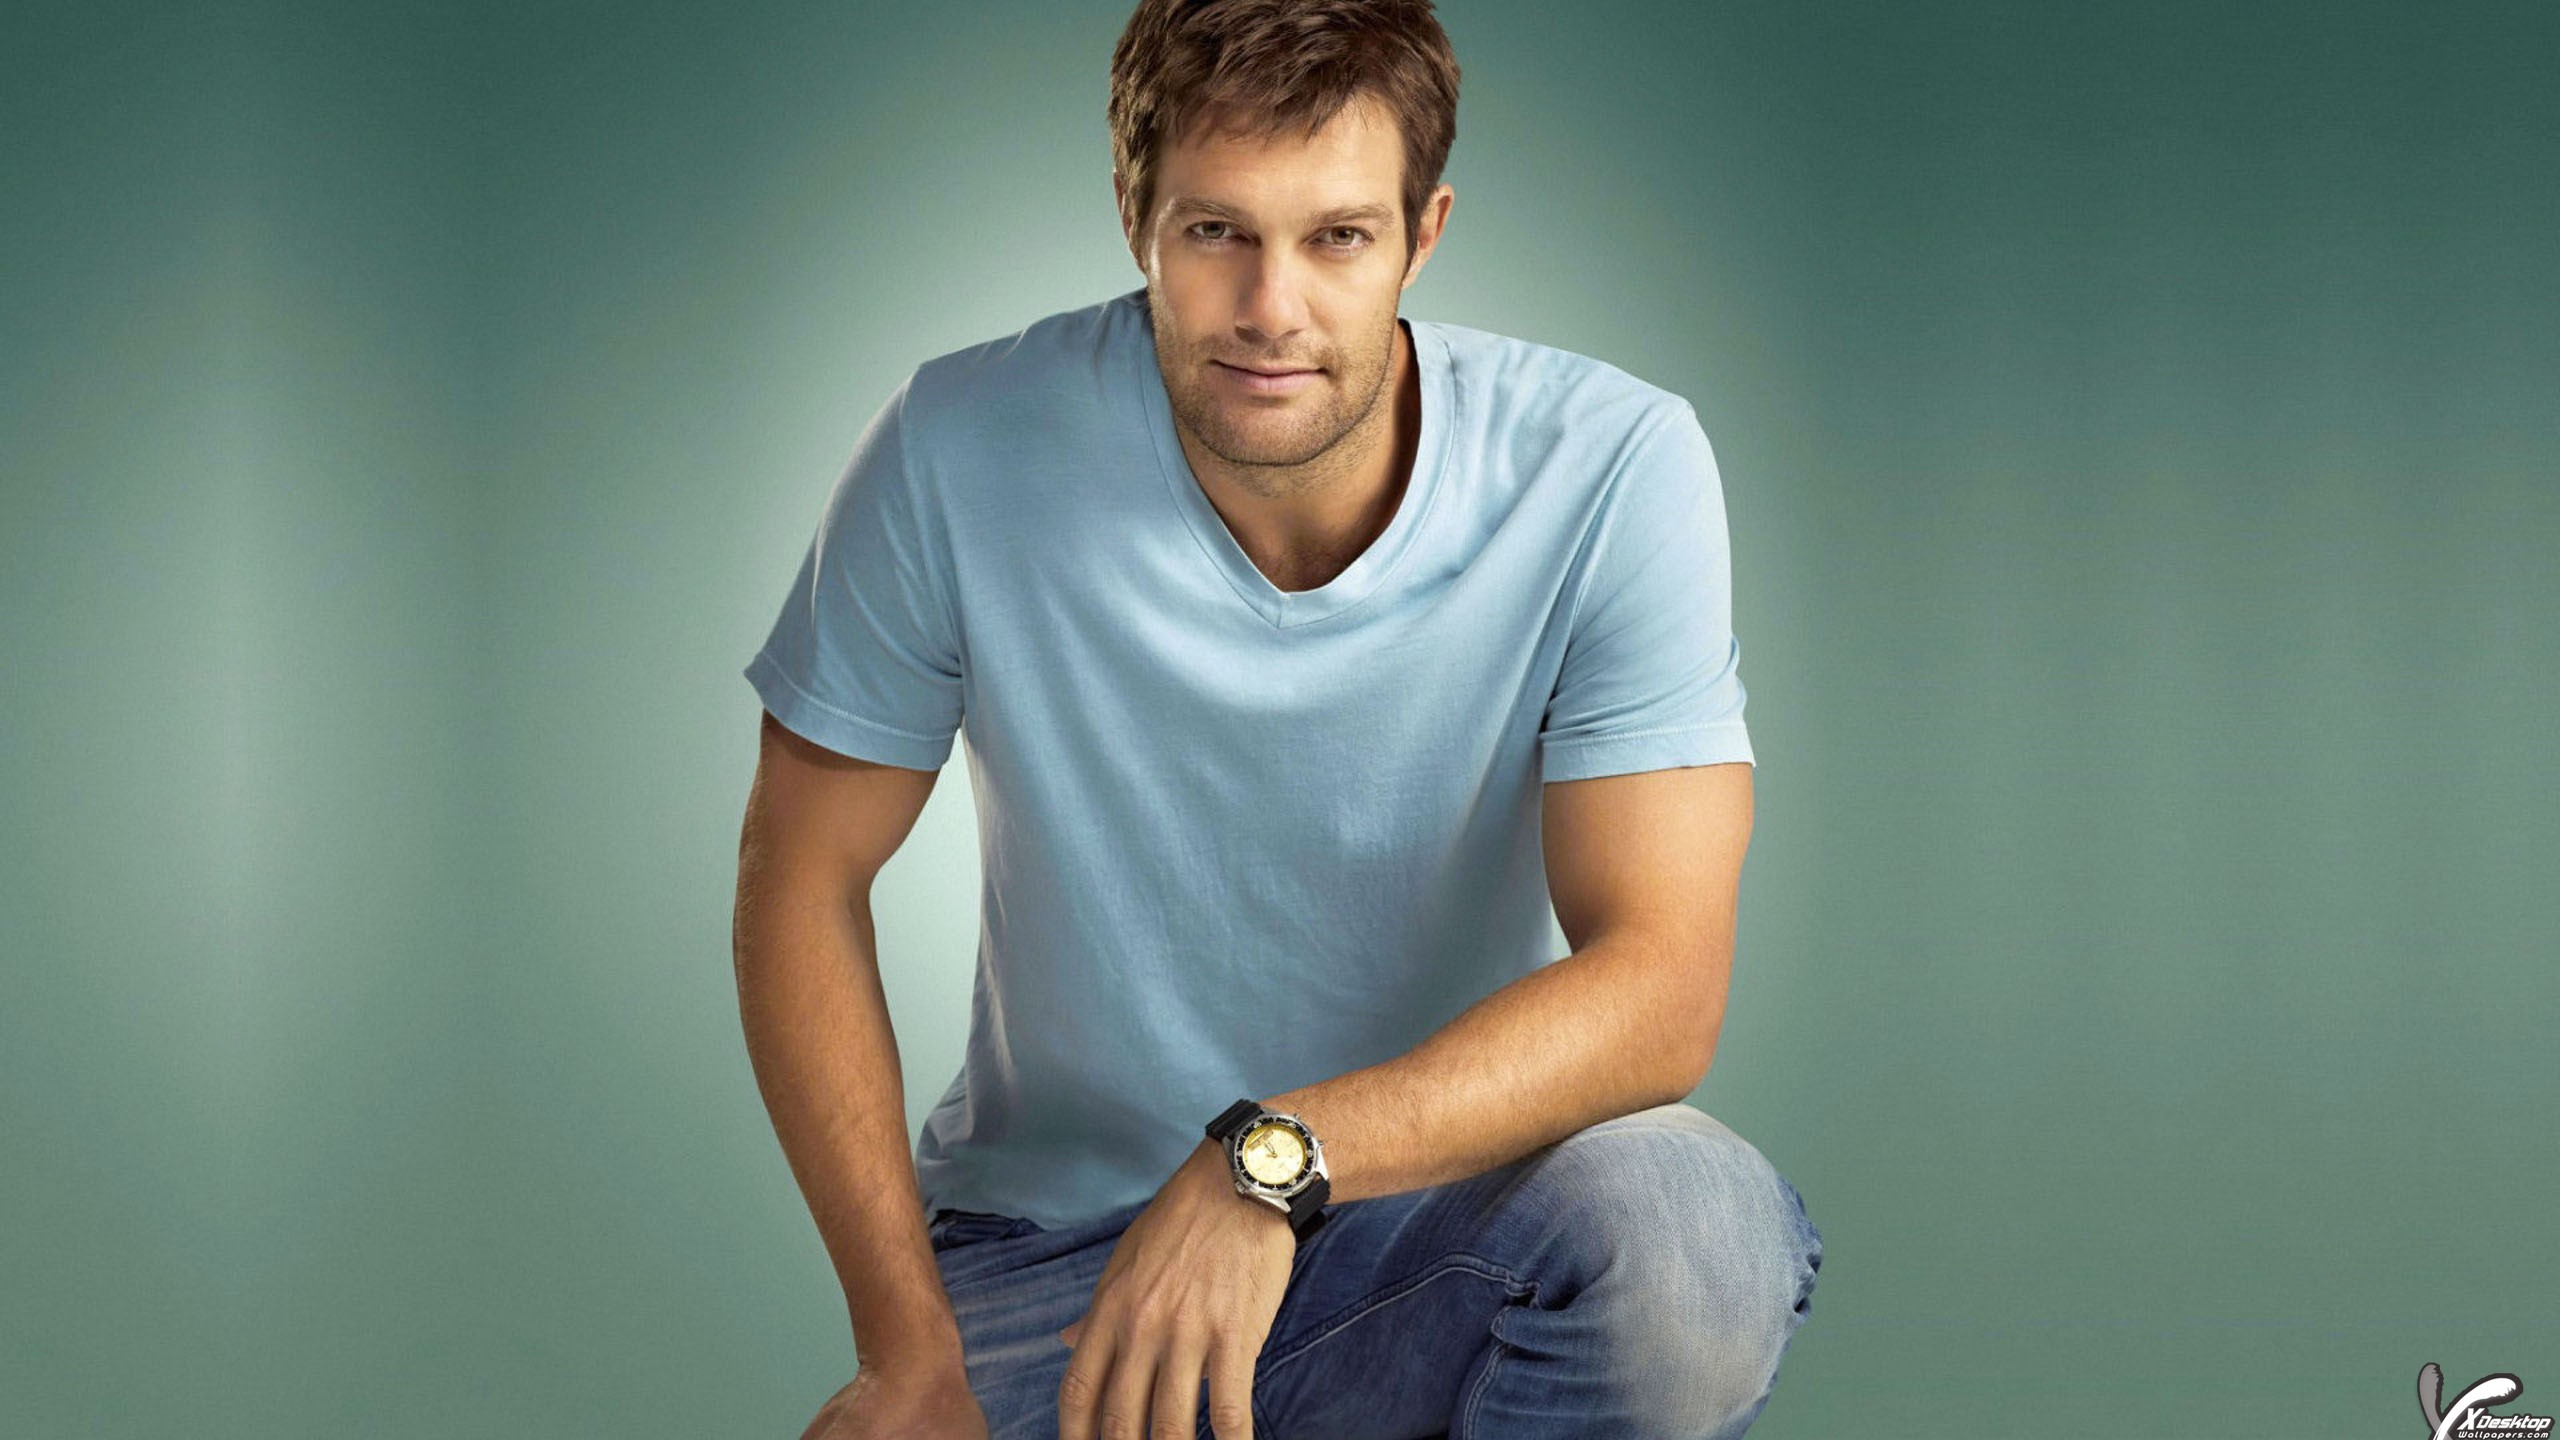 Blue T-Shirts Wallpapers, Photos & Images in HD Bradley Cooper Movies